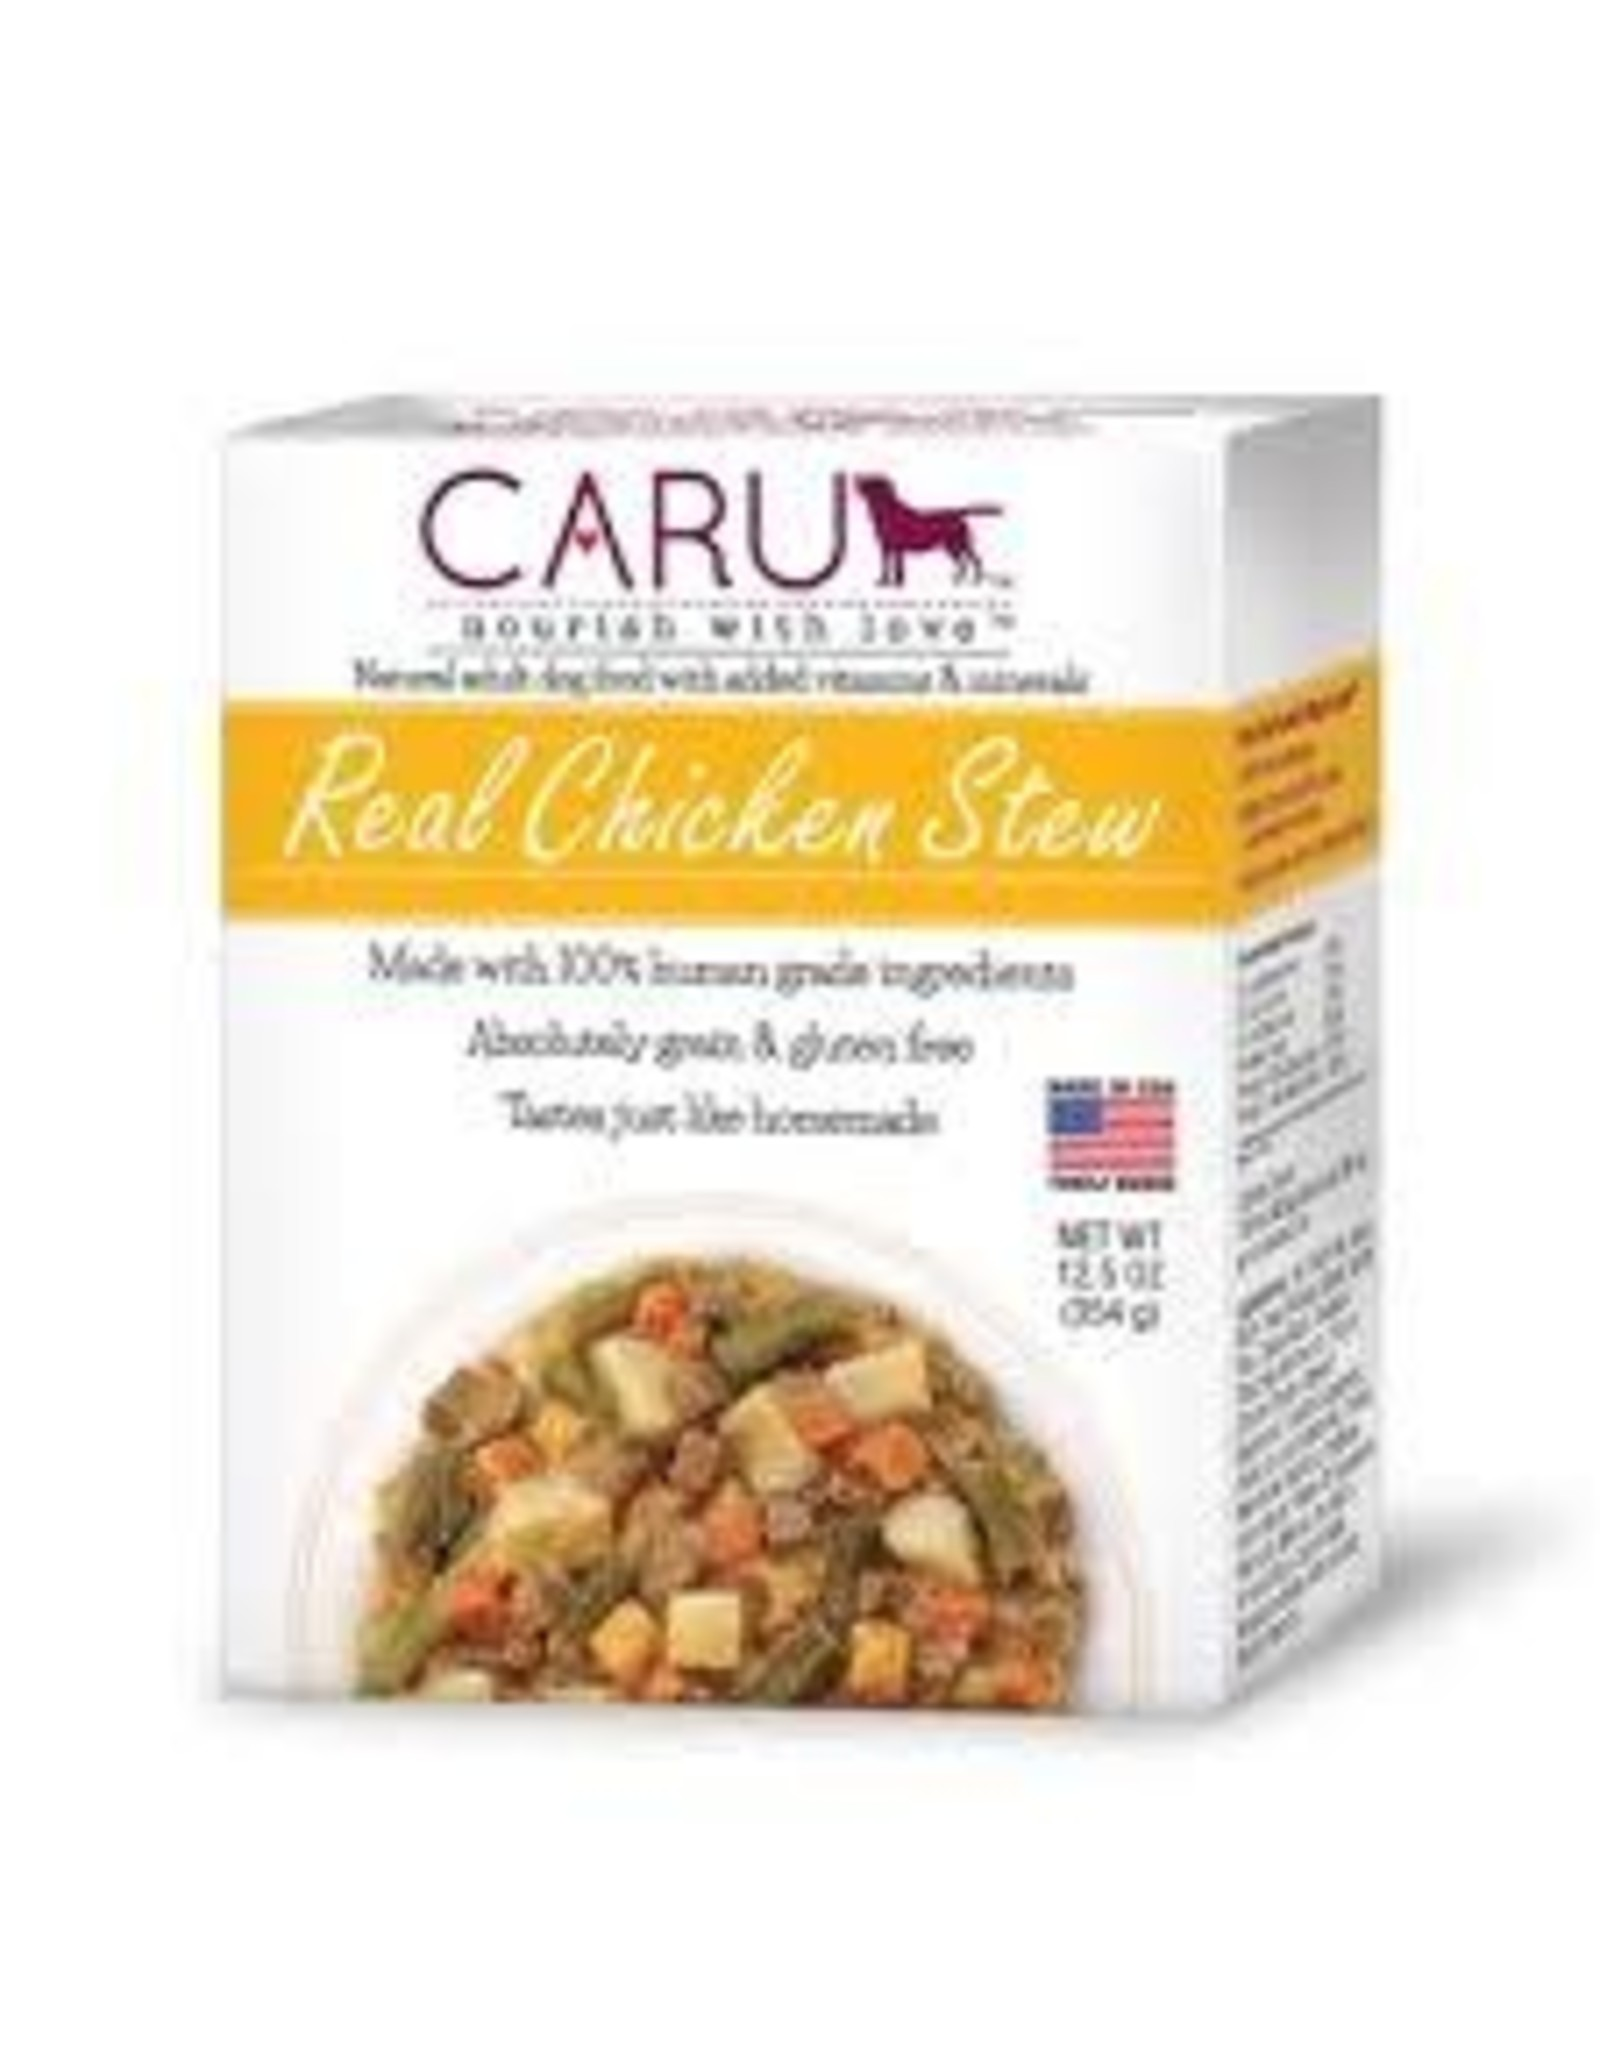 CARU PET FOOD CARU STEW REAL CHICKEN 12.5OZ